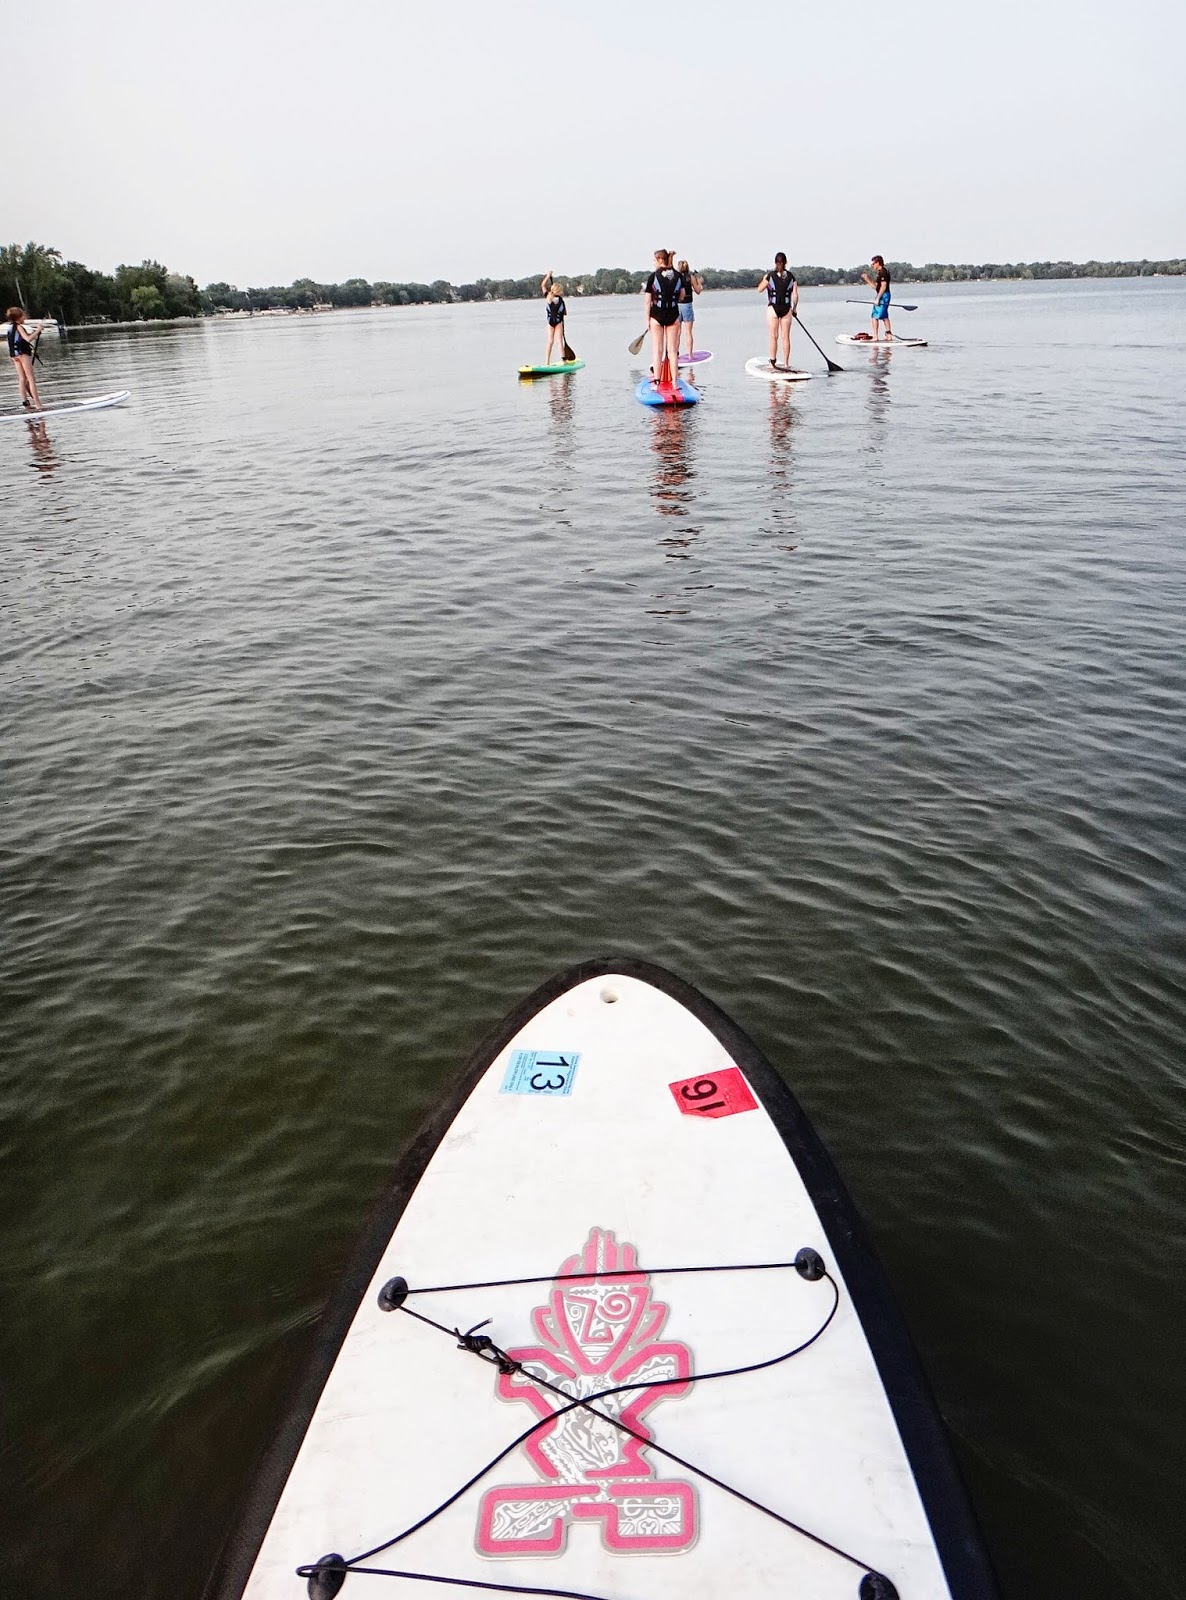 standup paddle boarding, Minnesota, Lakes